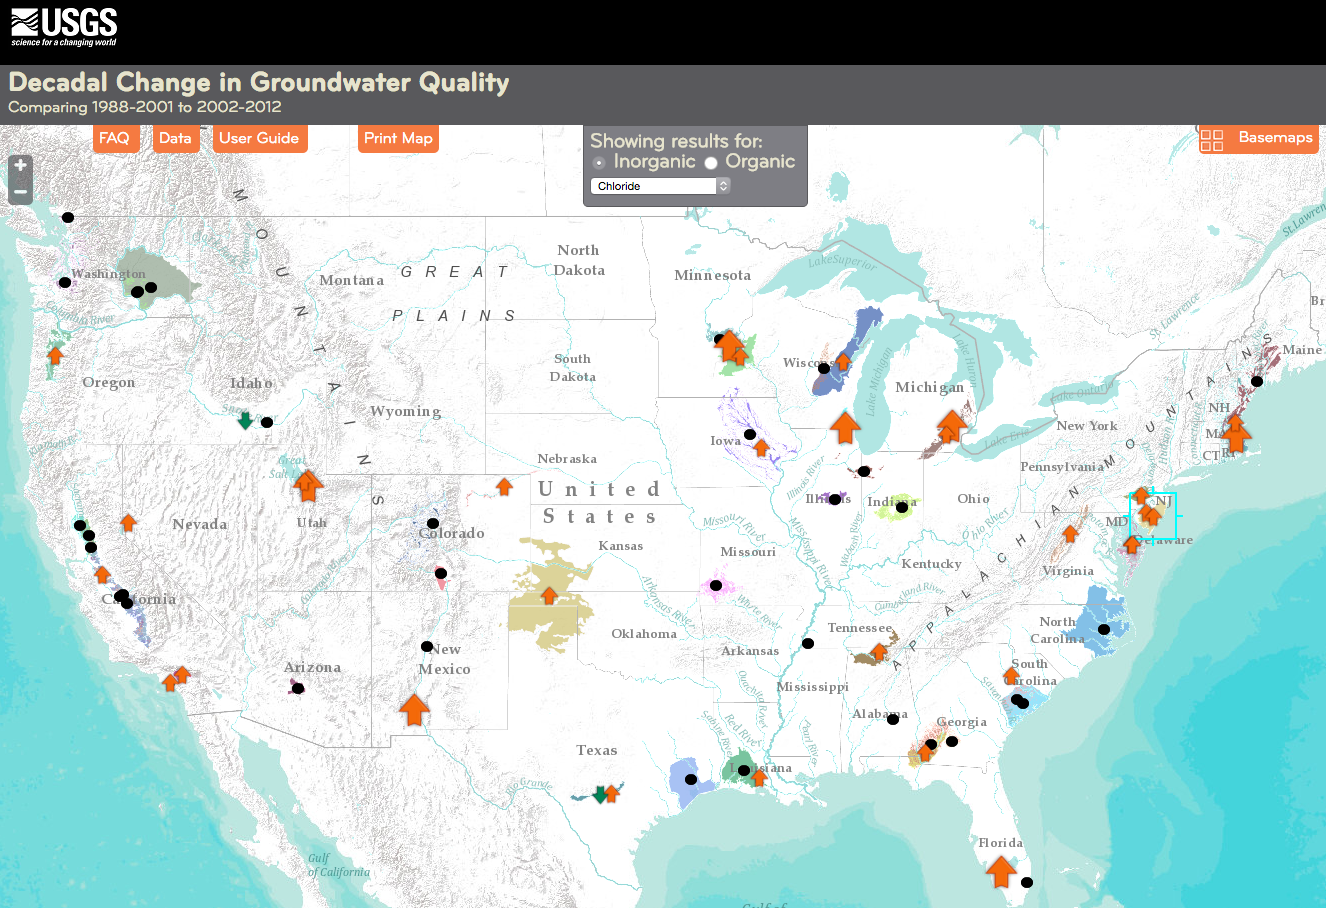 A screenshot of the national groundwater quality map for chloride. The arrows show whether concentrations increased, decreased between the two sampling periods, roughly a decade apart. Black dots represent no change in concentration.